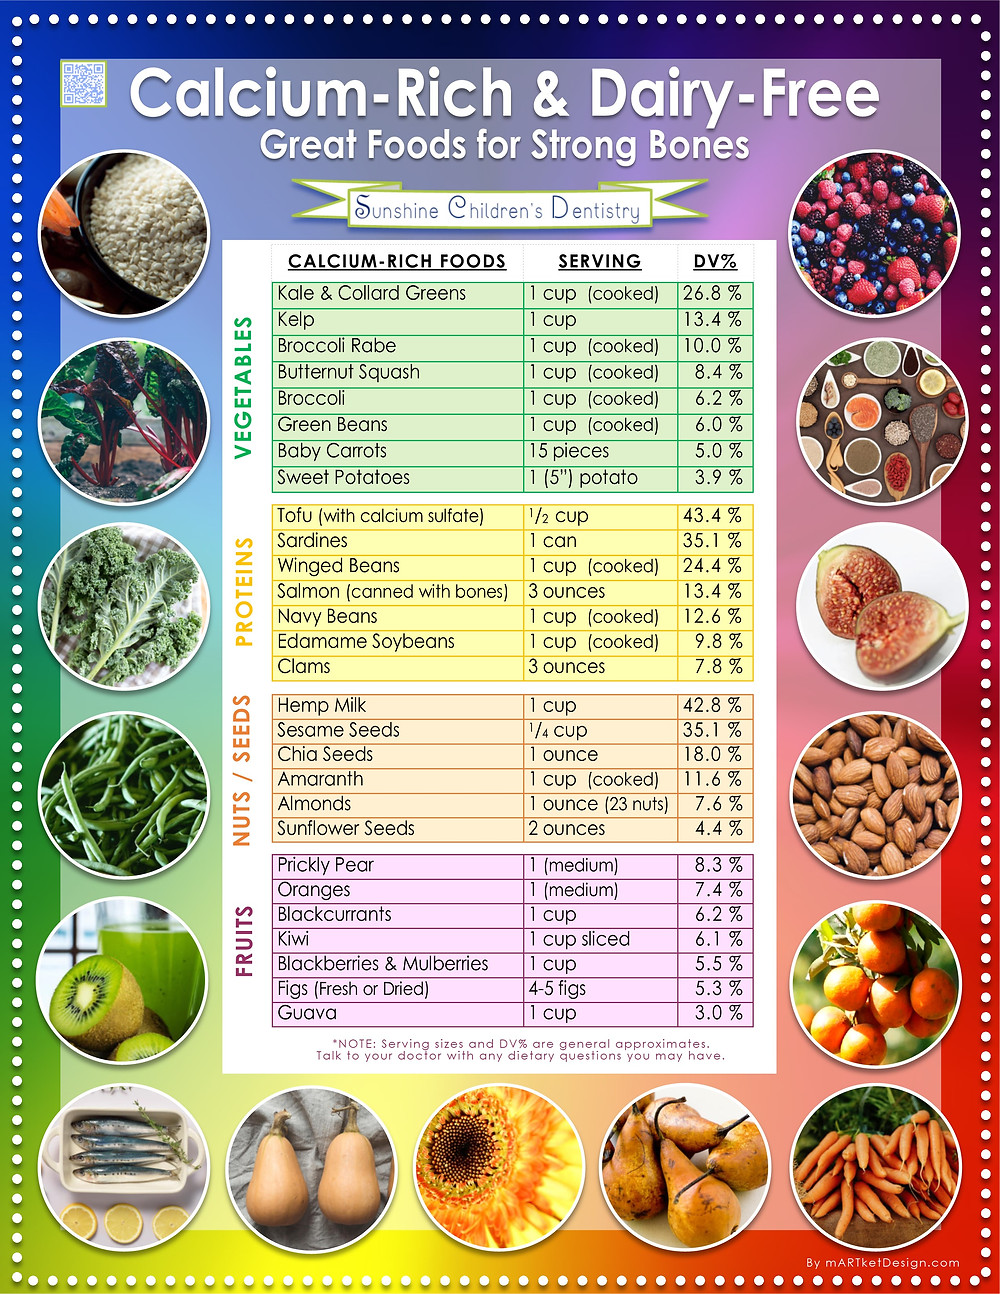 Calcium Rich & Dairy Free - Great Foods for Strong Bones